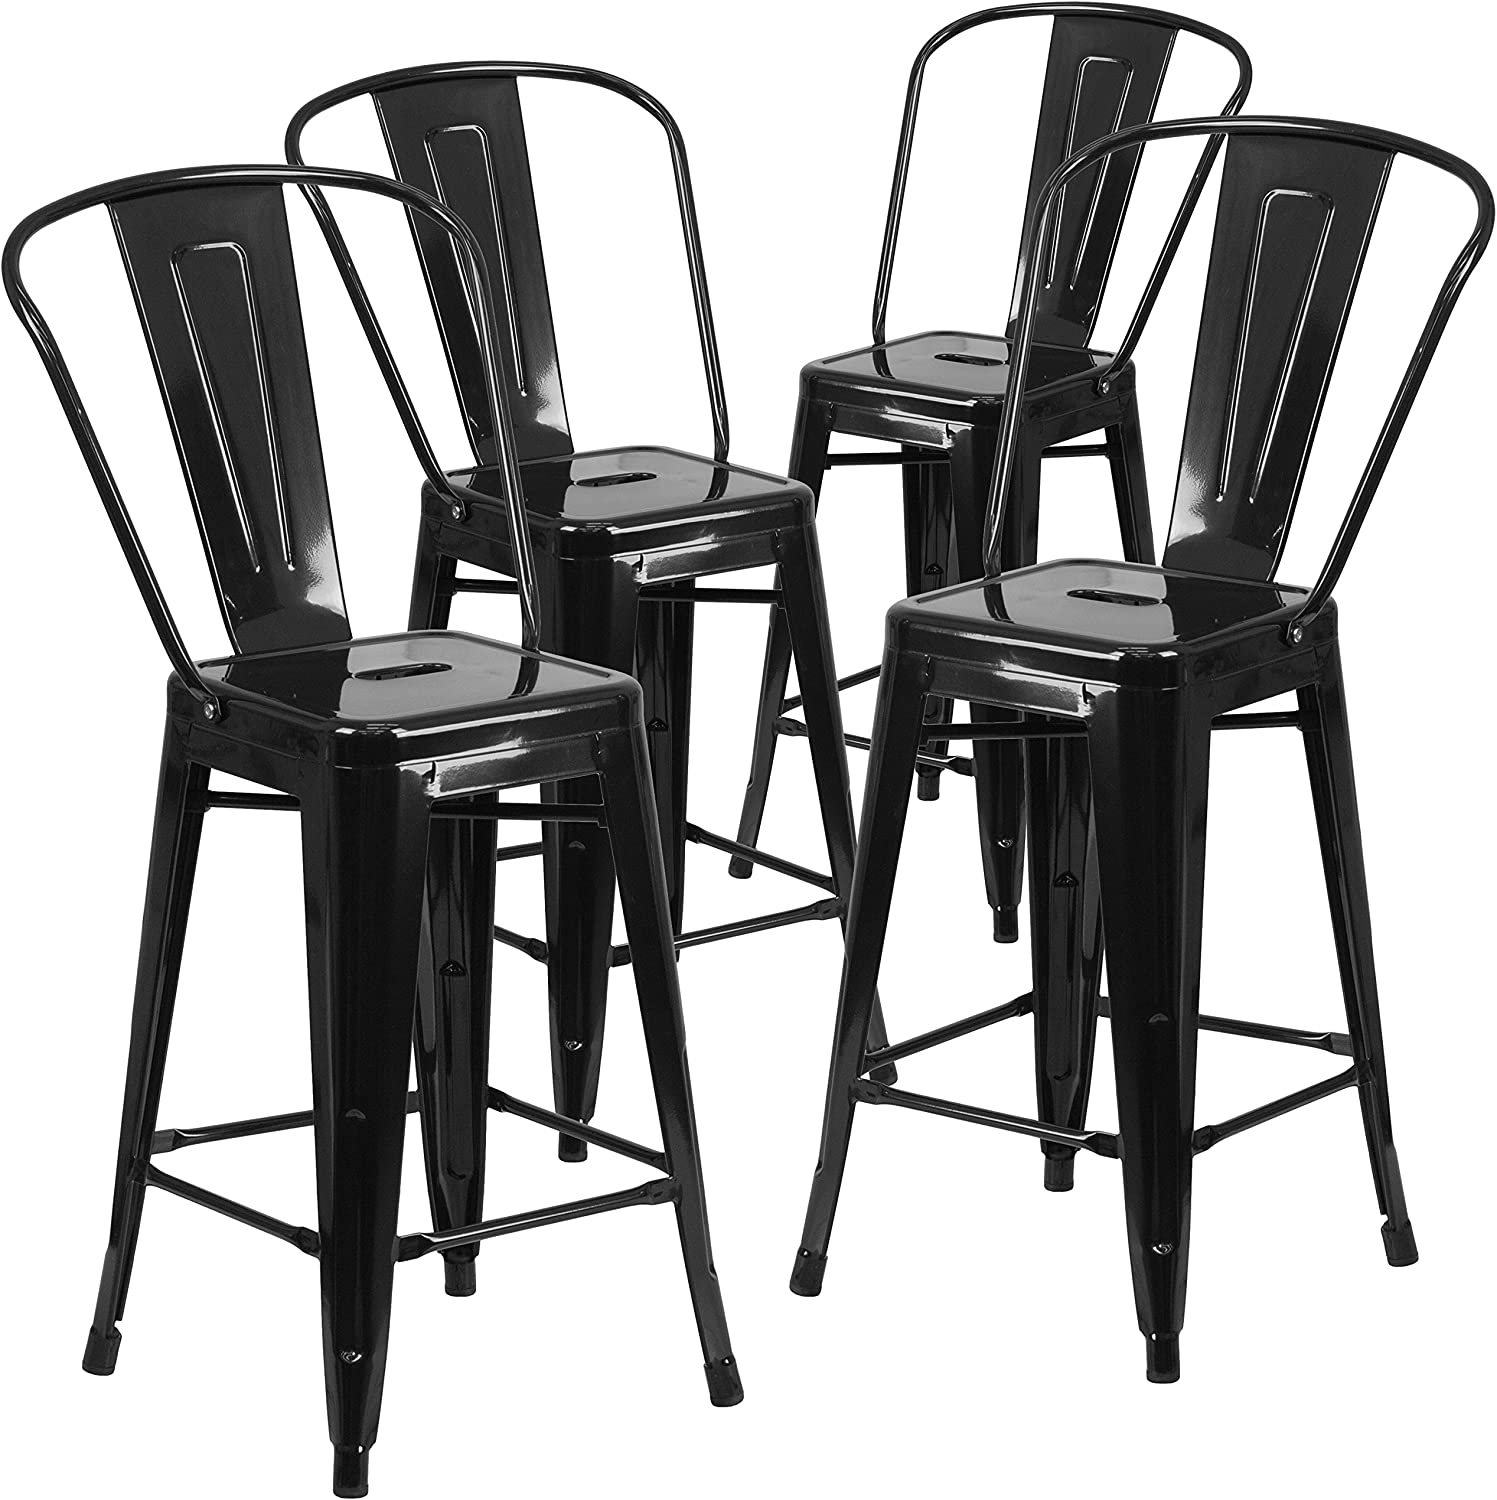 Flash Furniture 4 Pk. 24'' High Black Metal Indoor-Outdoor Counter Height Stool with Back